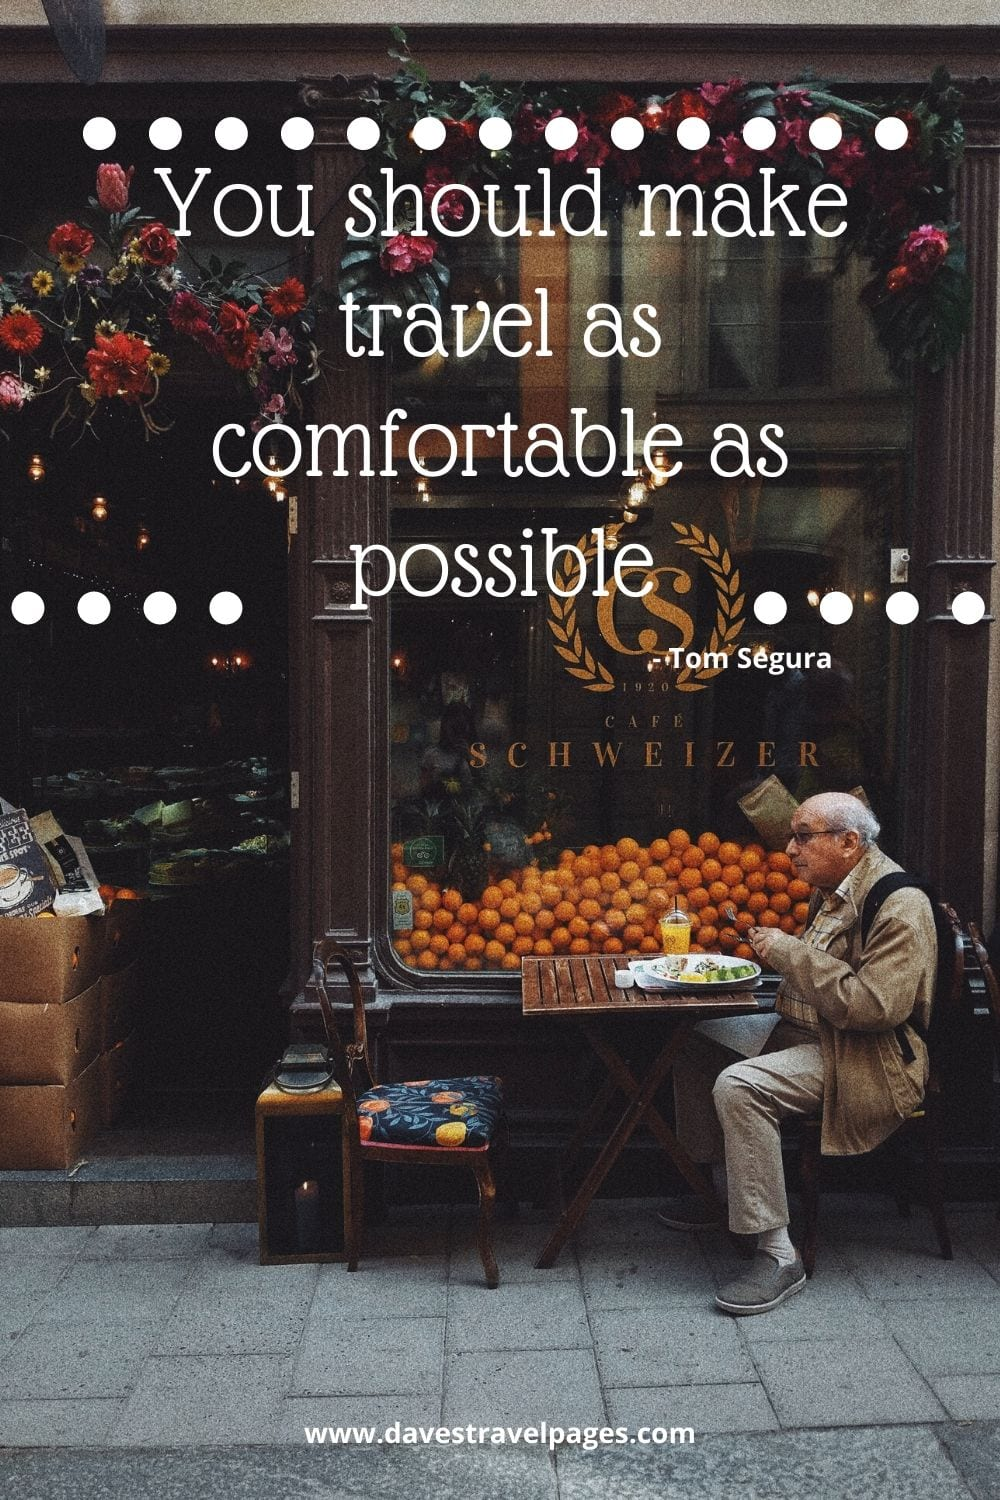 You should make travel as comfortable as possible. Tom Segura